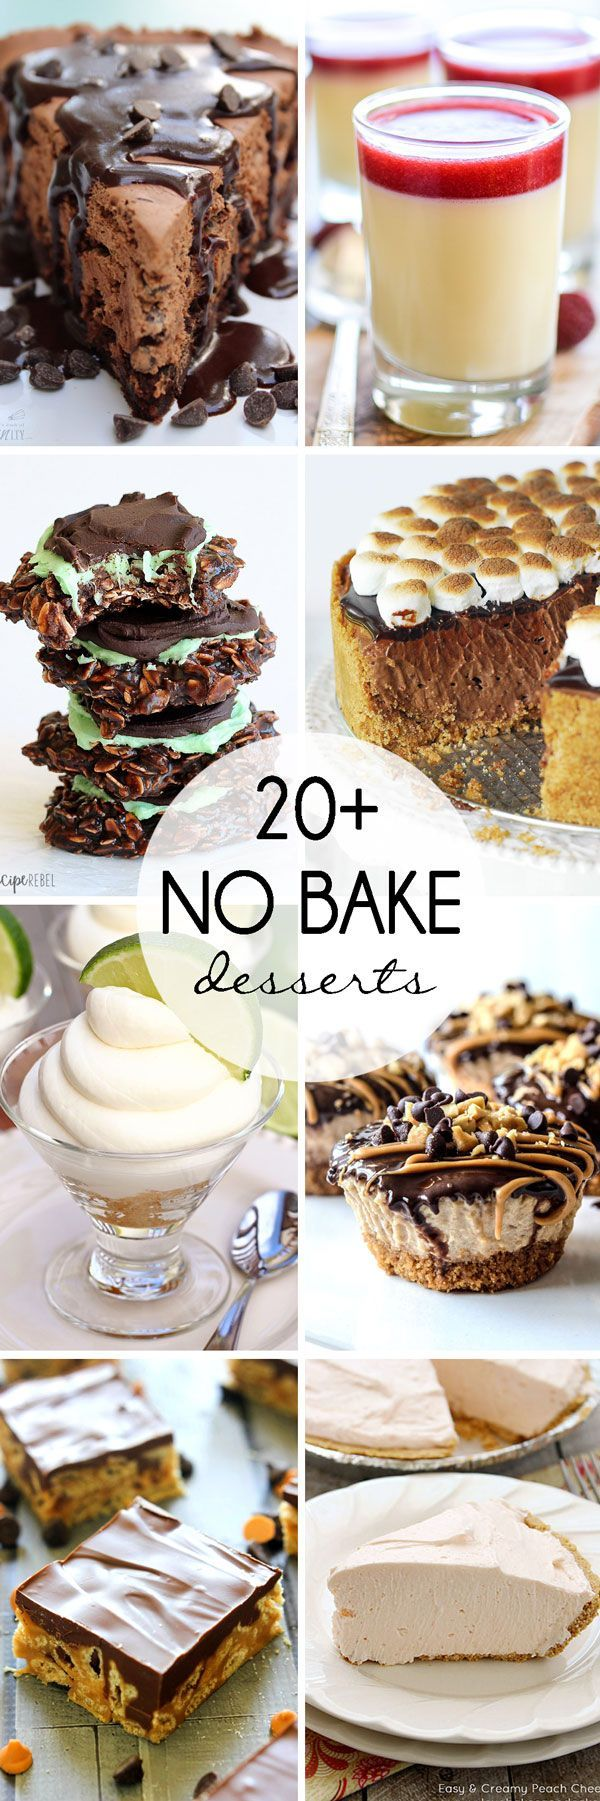 20 no bake desserts for summer oven ice cream treats and 20 no bake desserts for summer forumfinder Choice Image